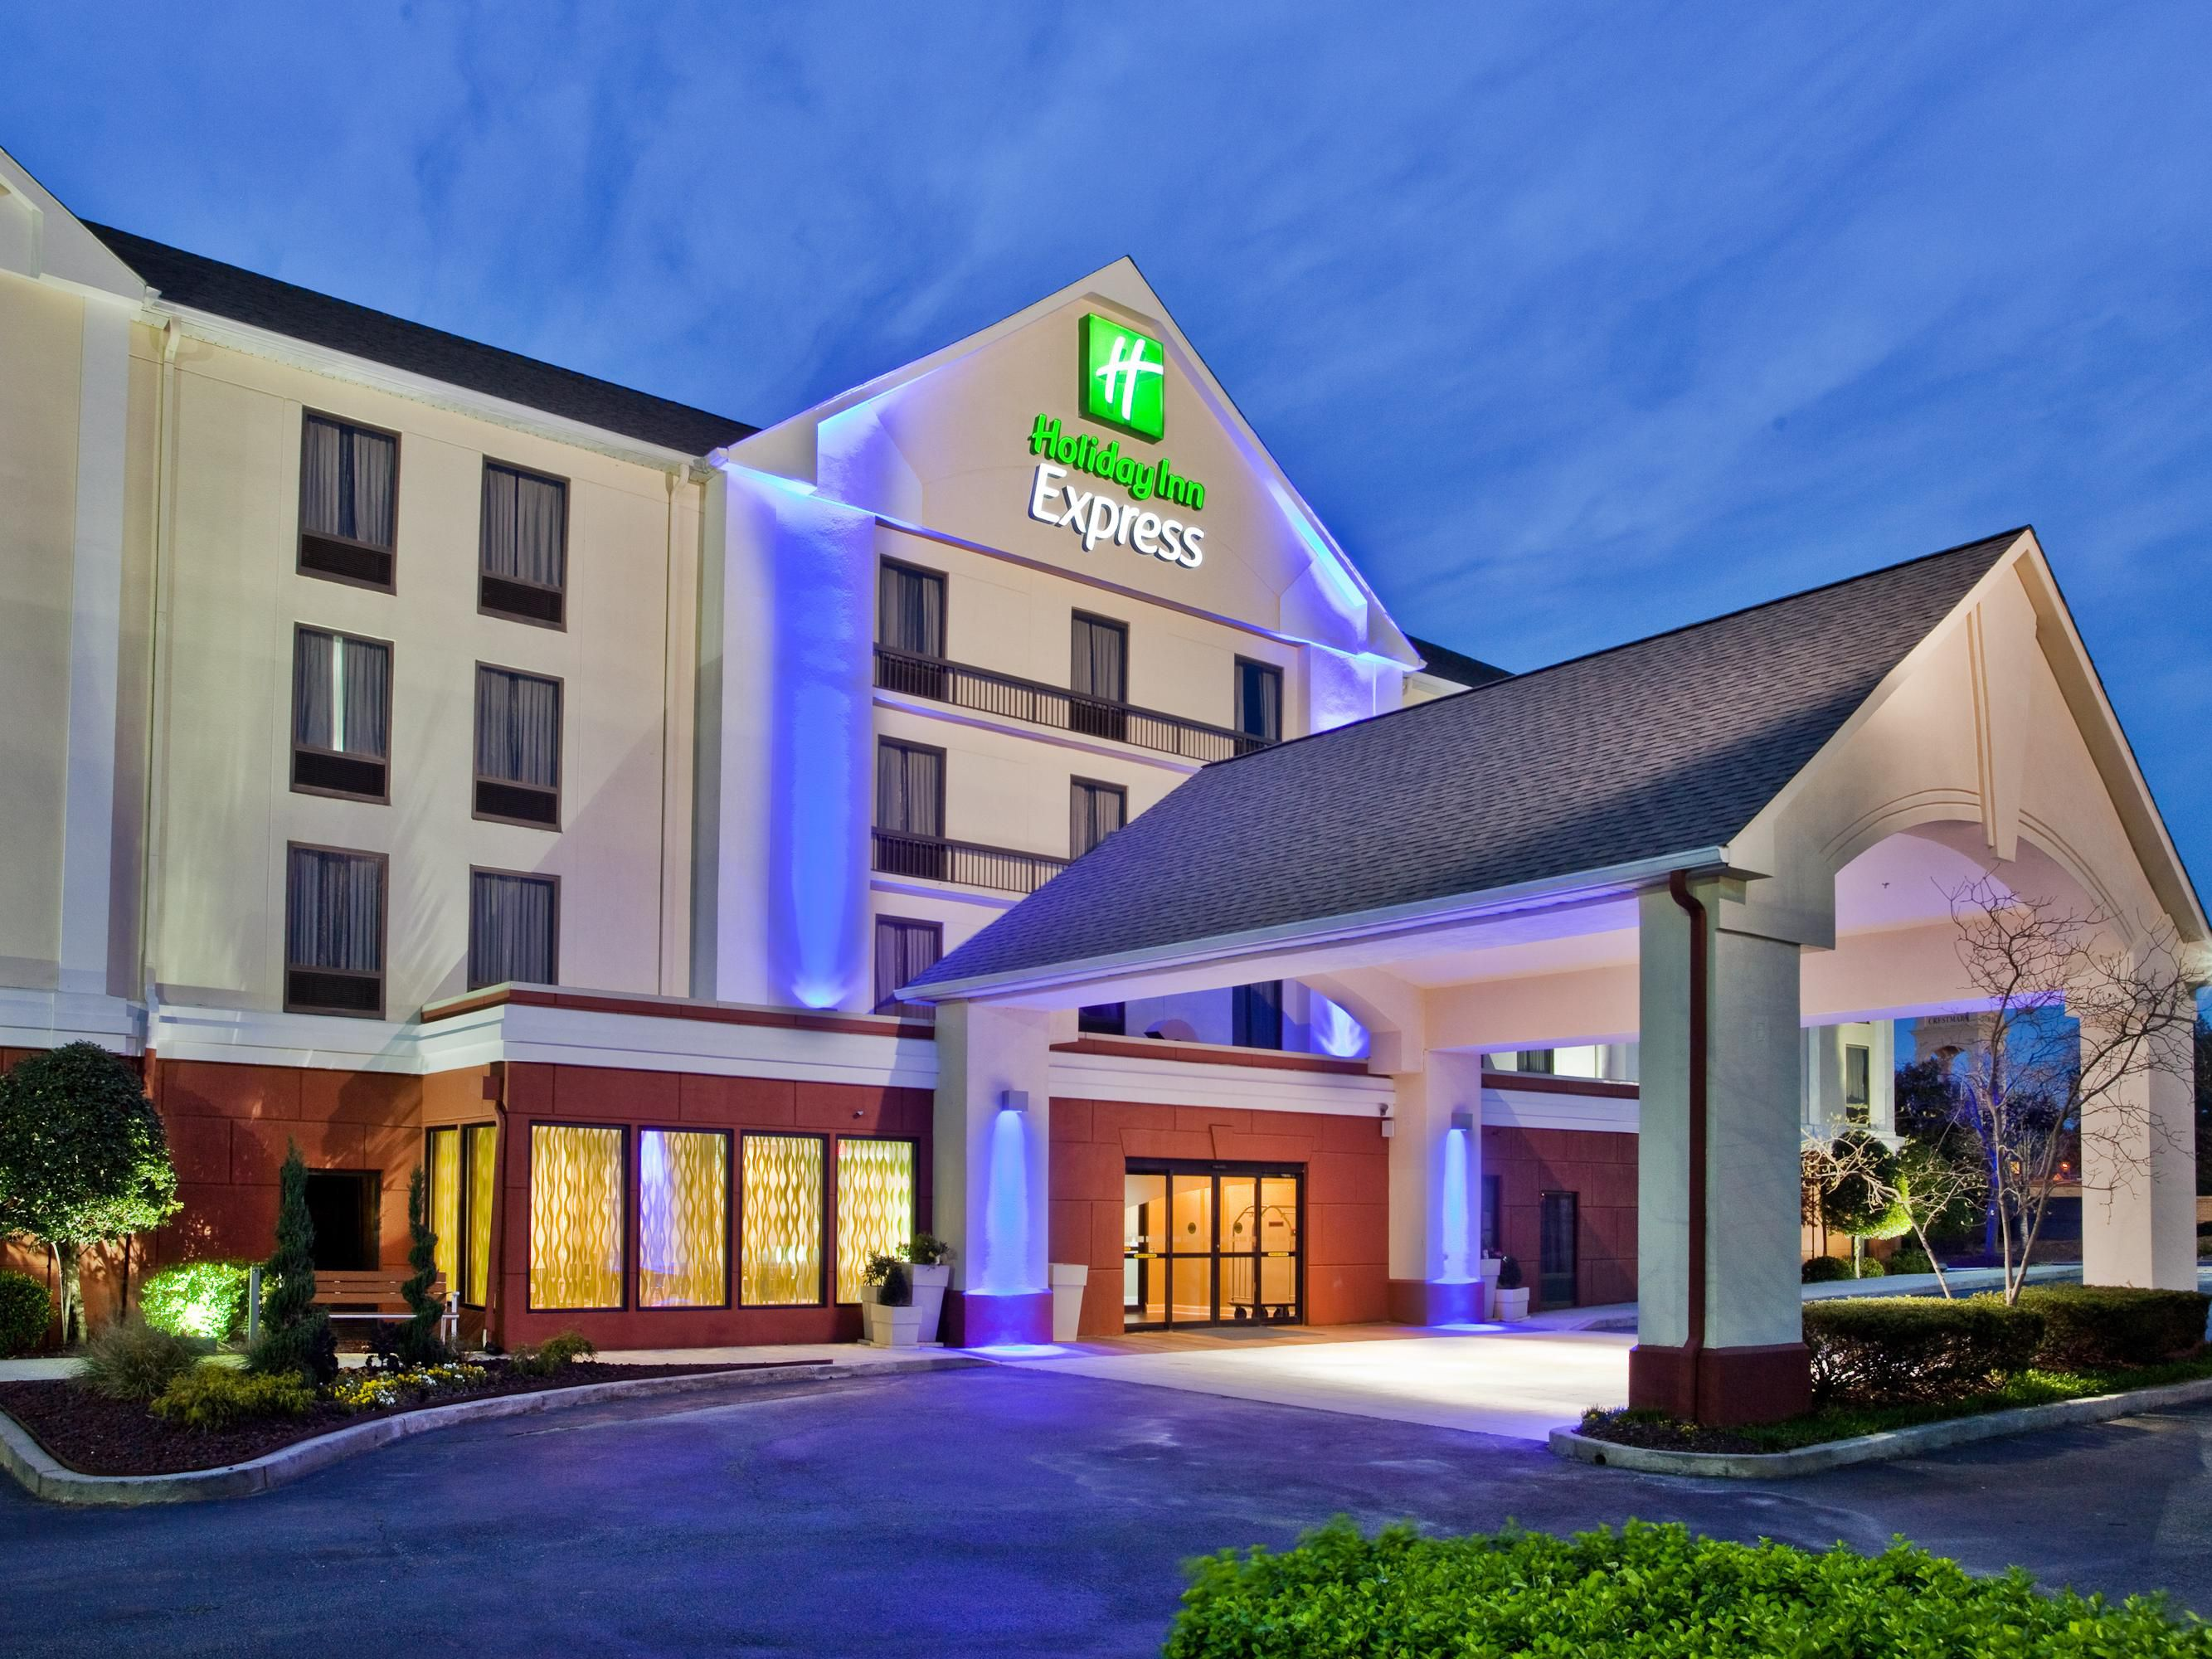 Welcome To your Holiday Inn Express Lithia Springs Georgia